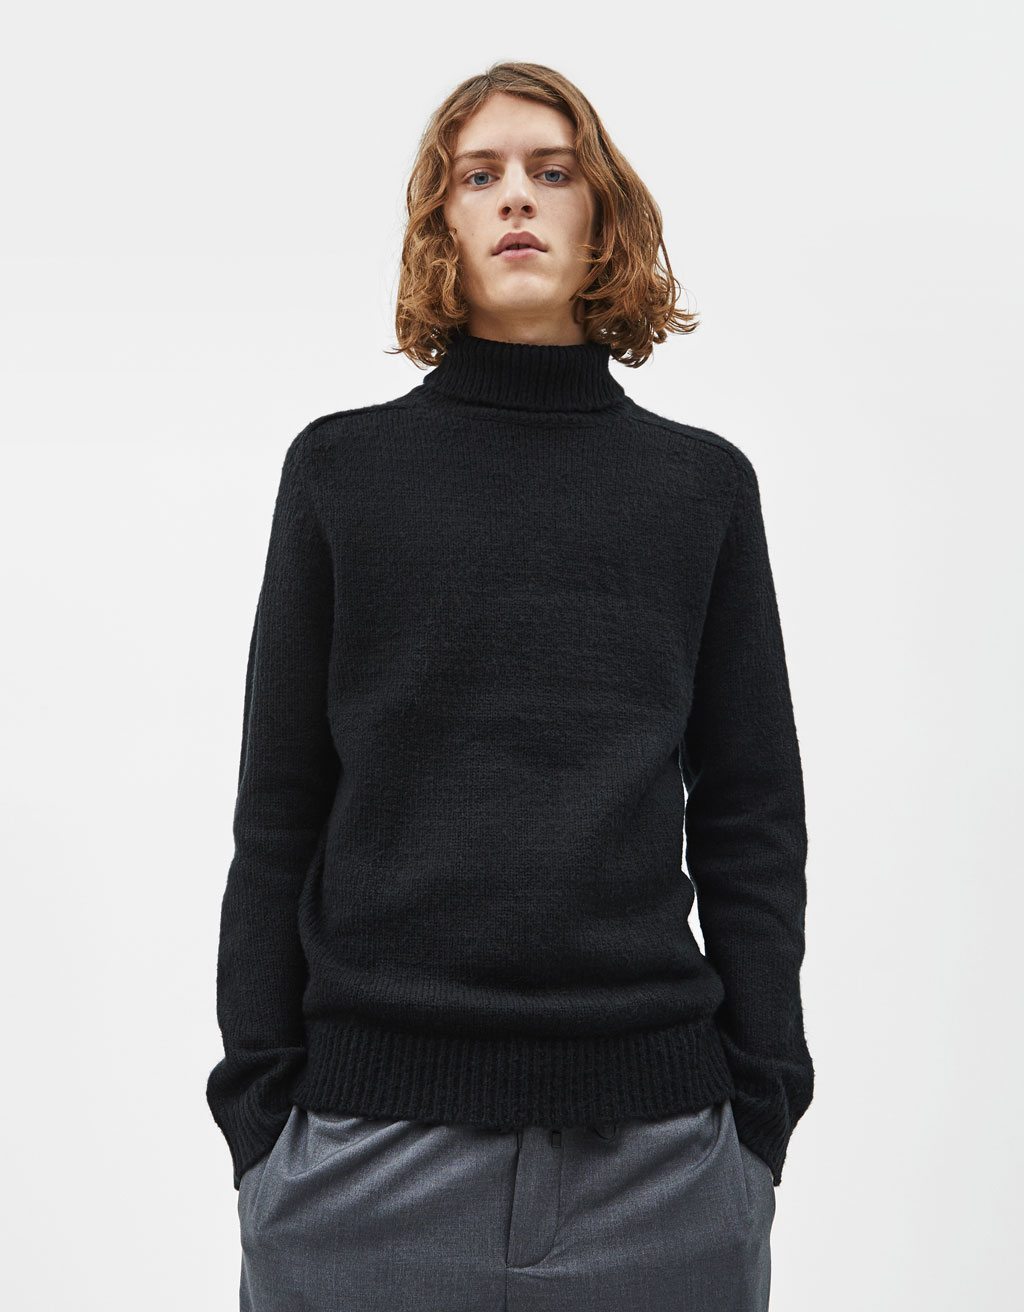 dae30fc1fabf7a Knitwear - COLLECTION - MEN - Bershka United States